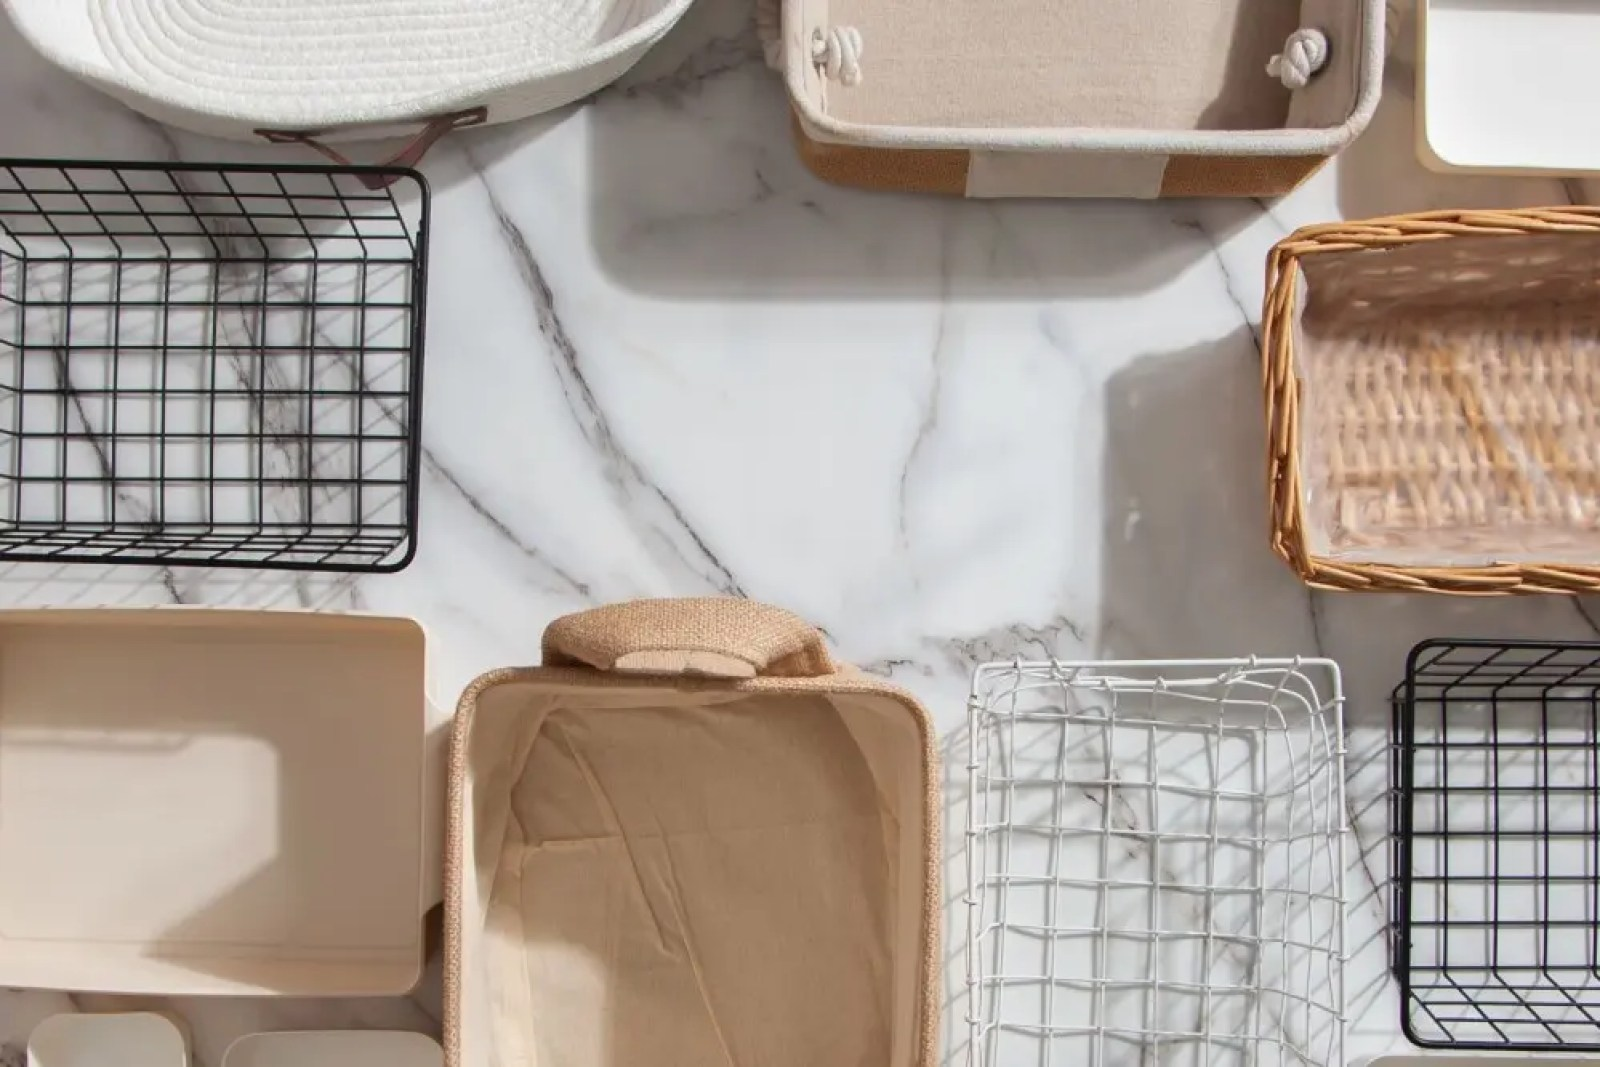 A variety of storage baskets and containers.